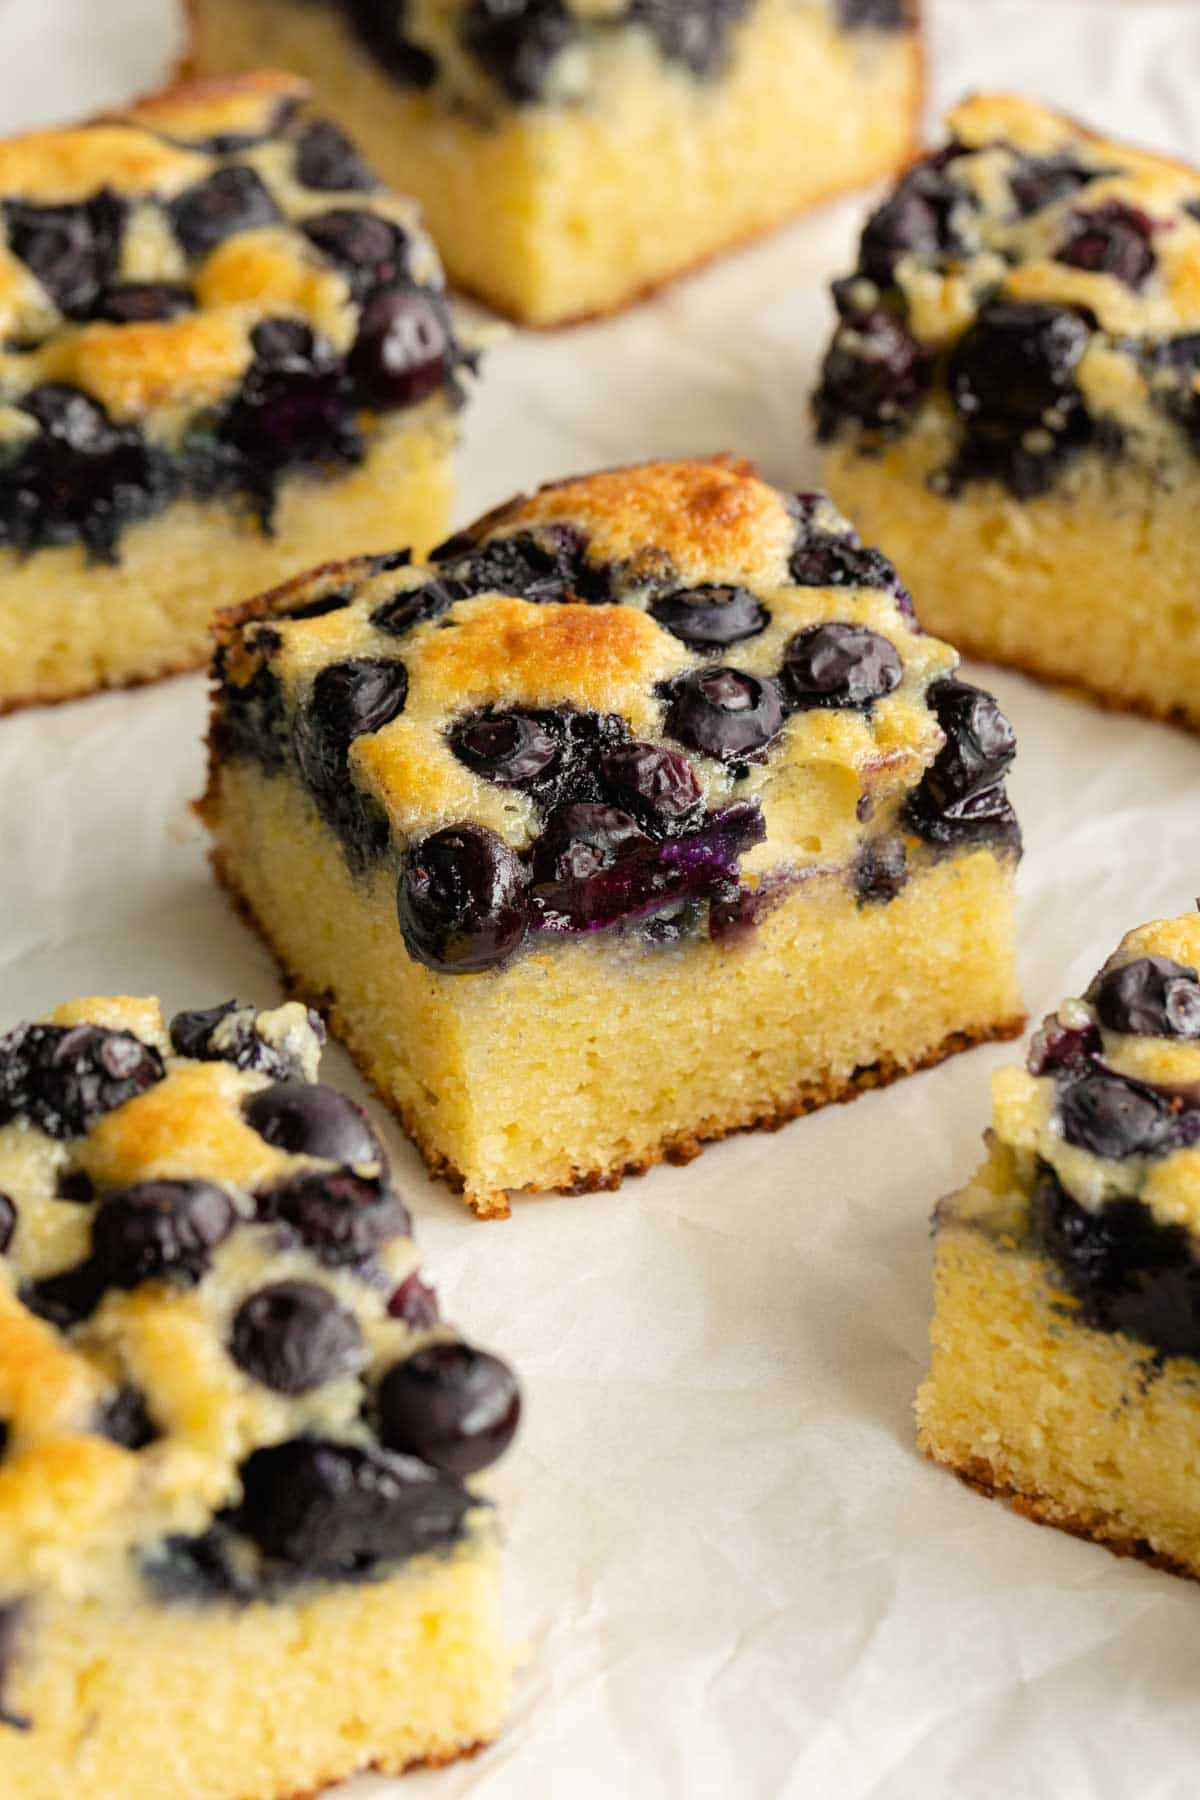 Lemon blueberry cake cut into squares and arranged on a sheet of parchment paper.